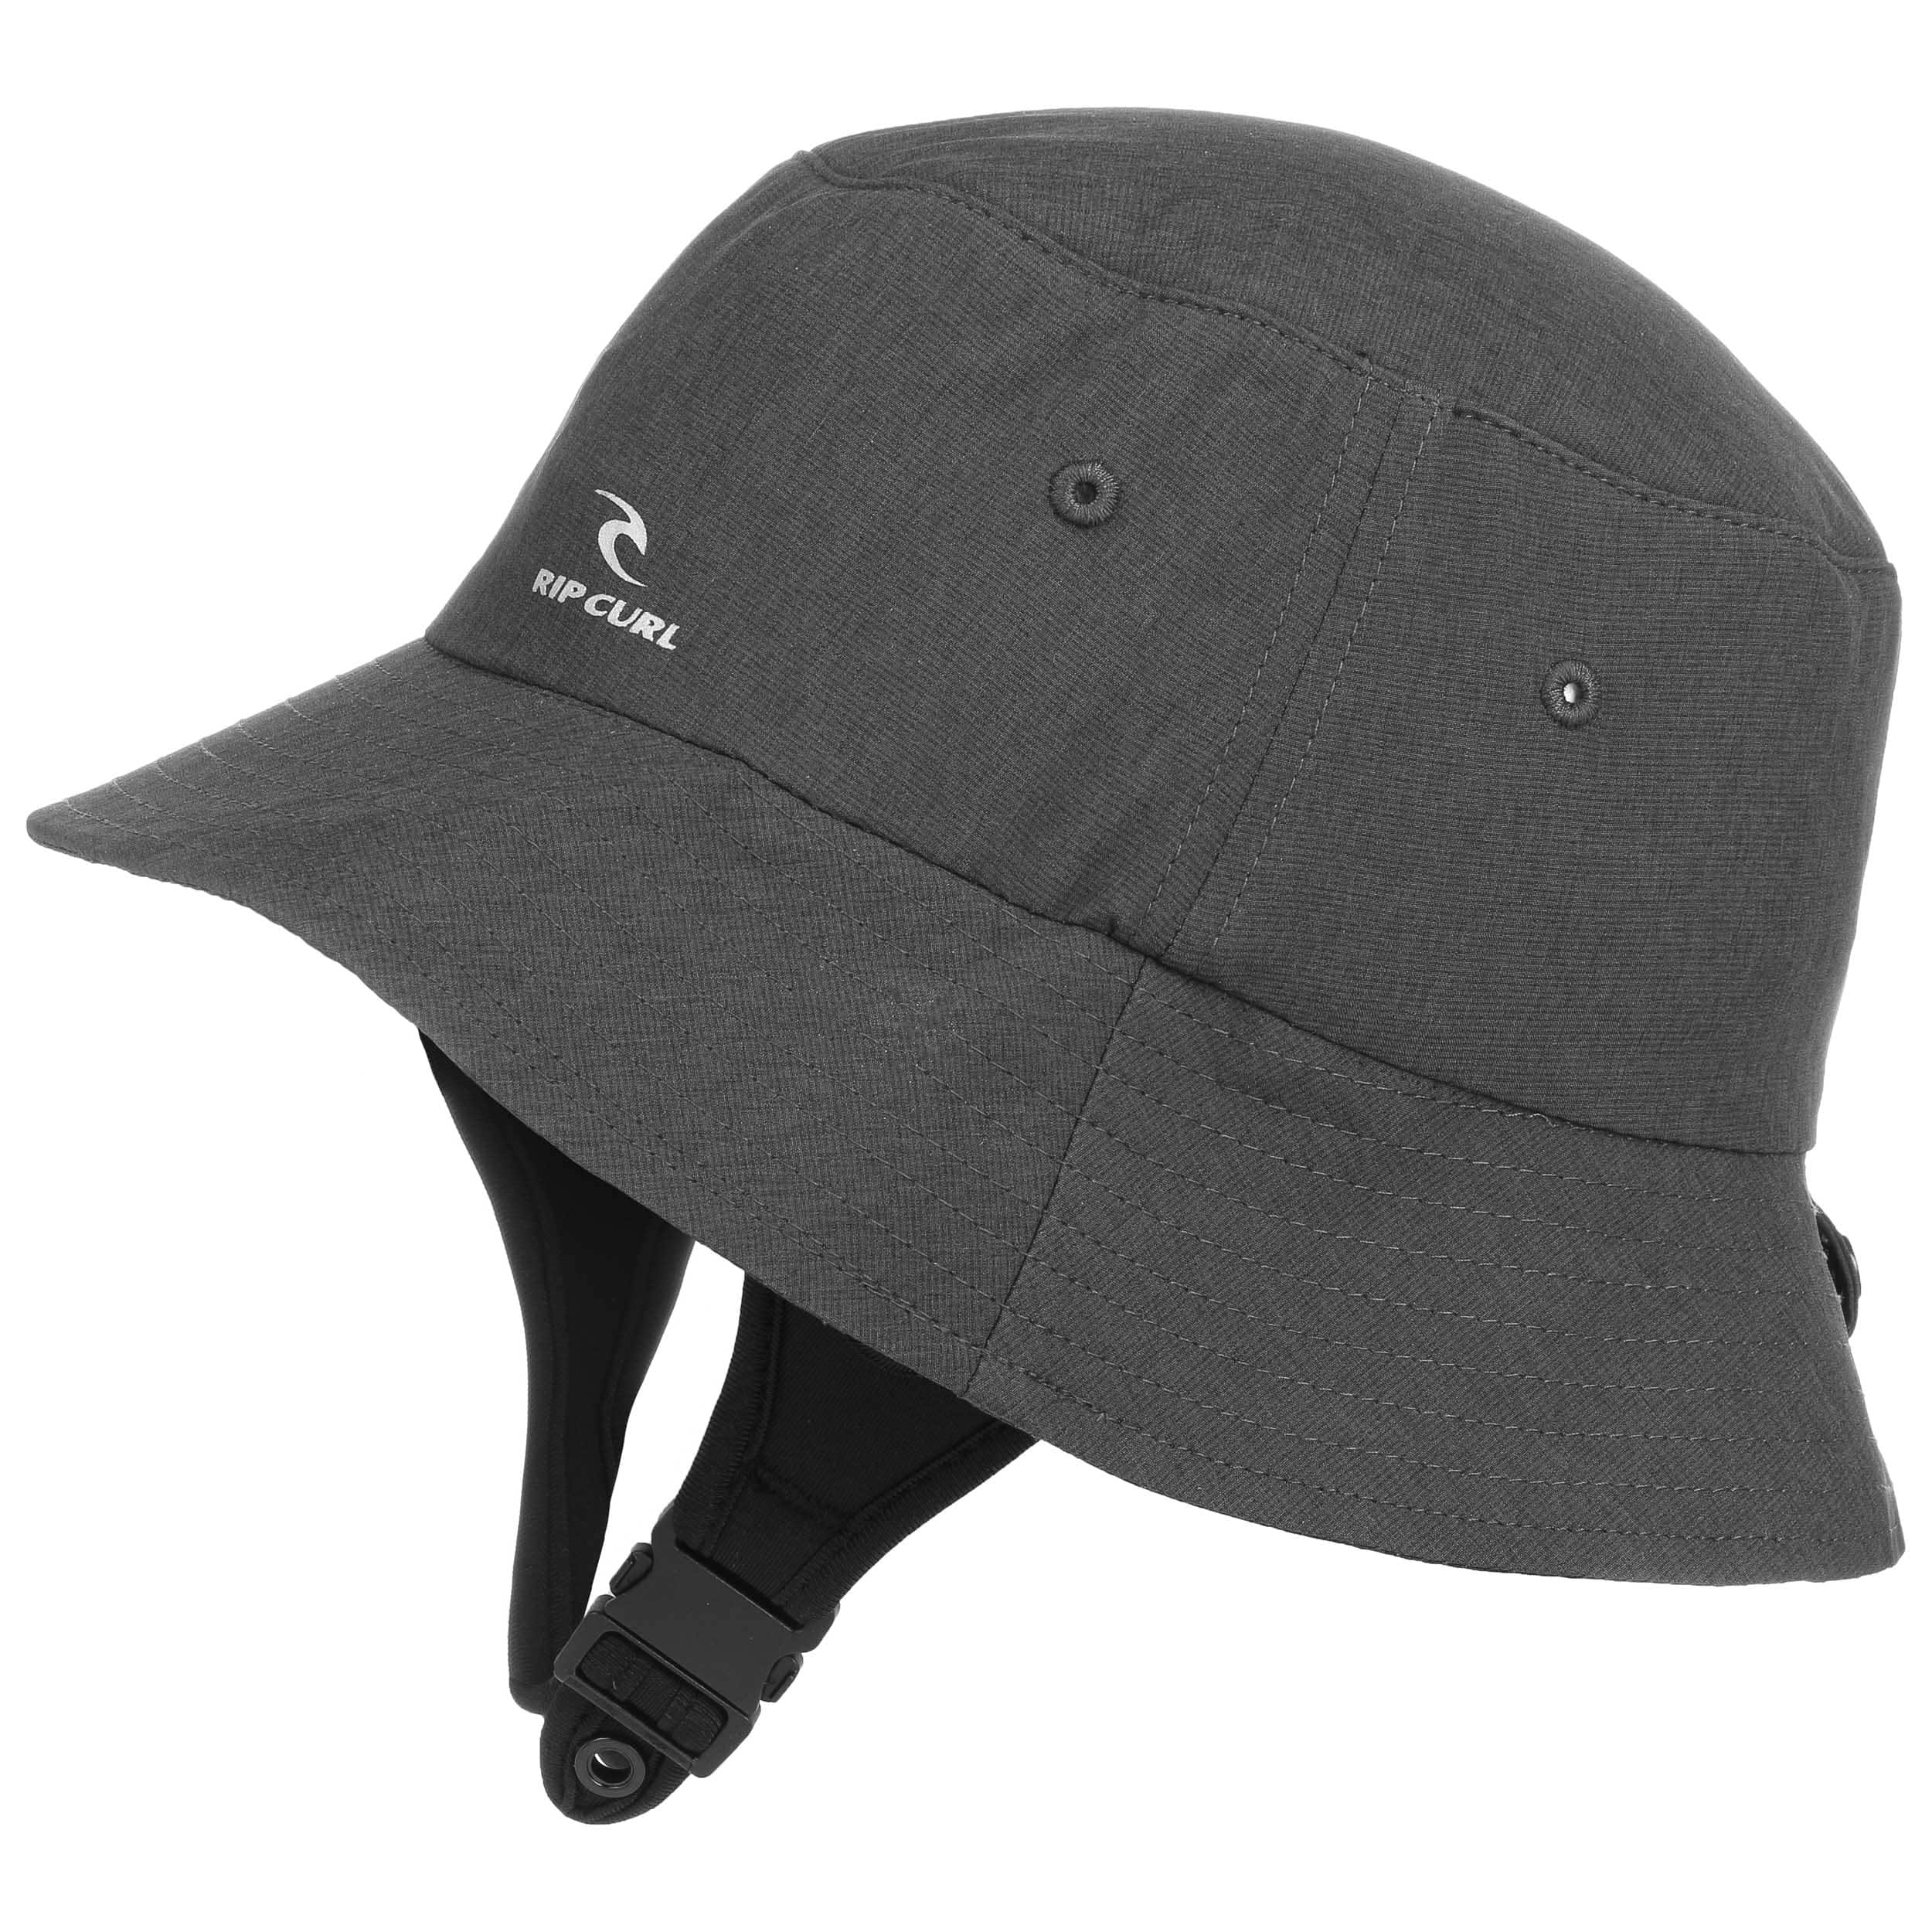 ... Axis Surf Bucket Hat by Rip Curl - black 7 ... 6d964be2169